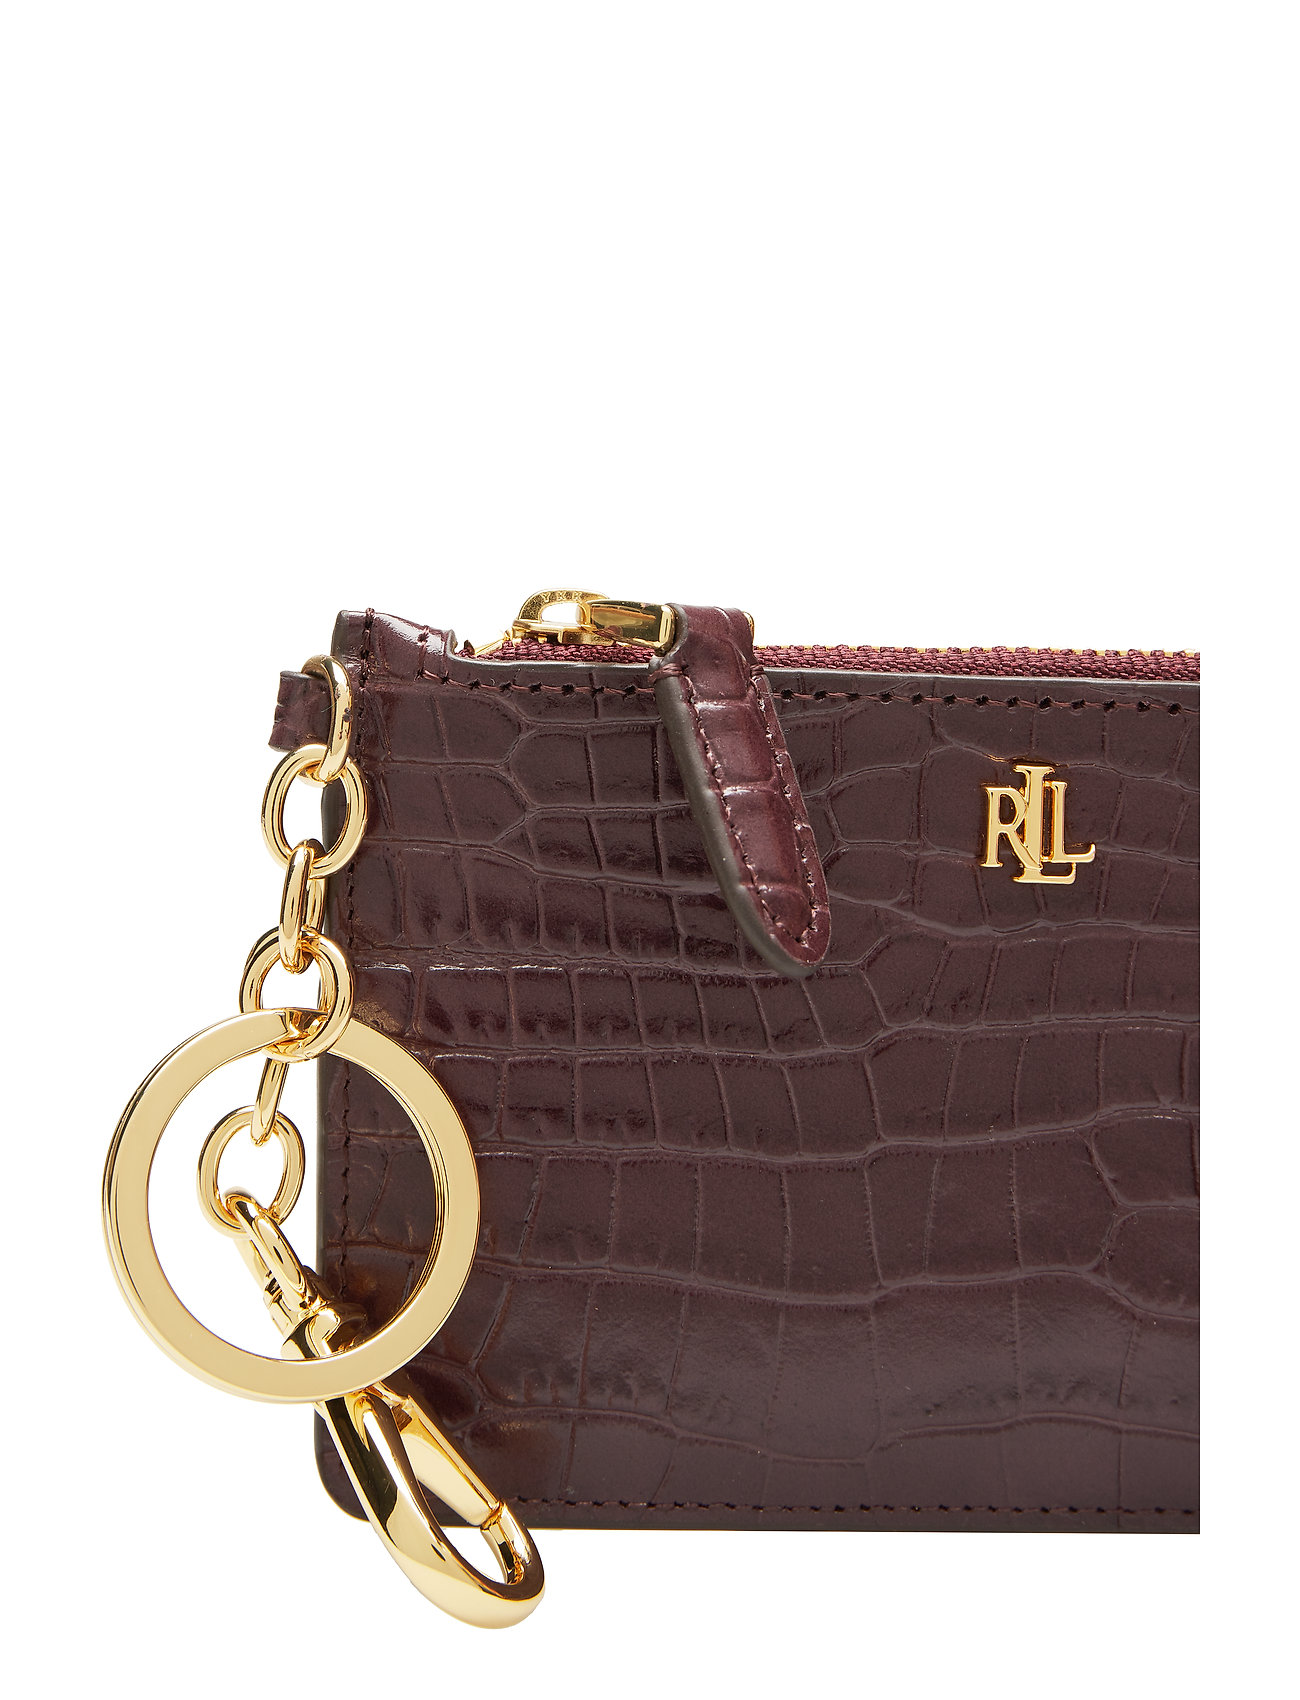 Ralph Zip Card Leather CasebordeauxLauren Leather uTc3Kl1FJ